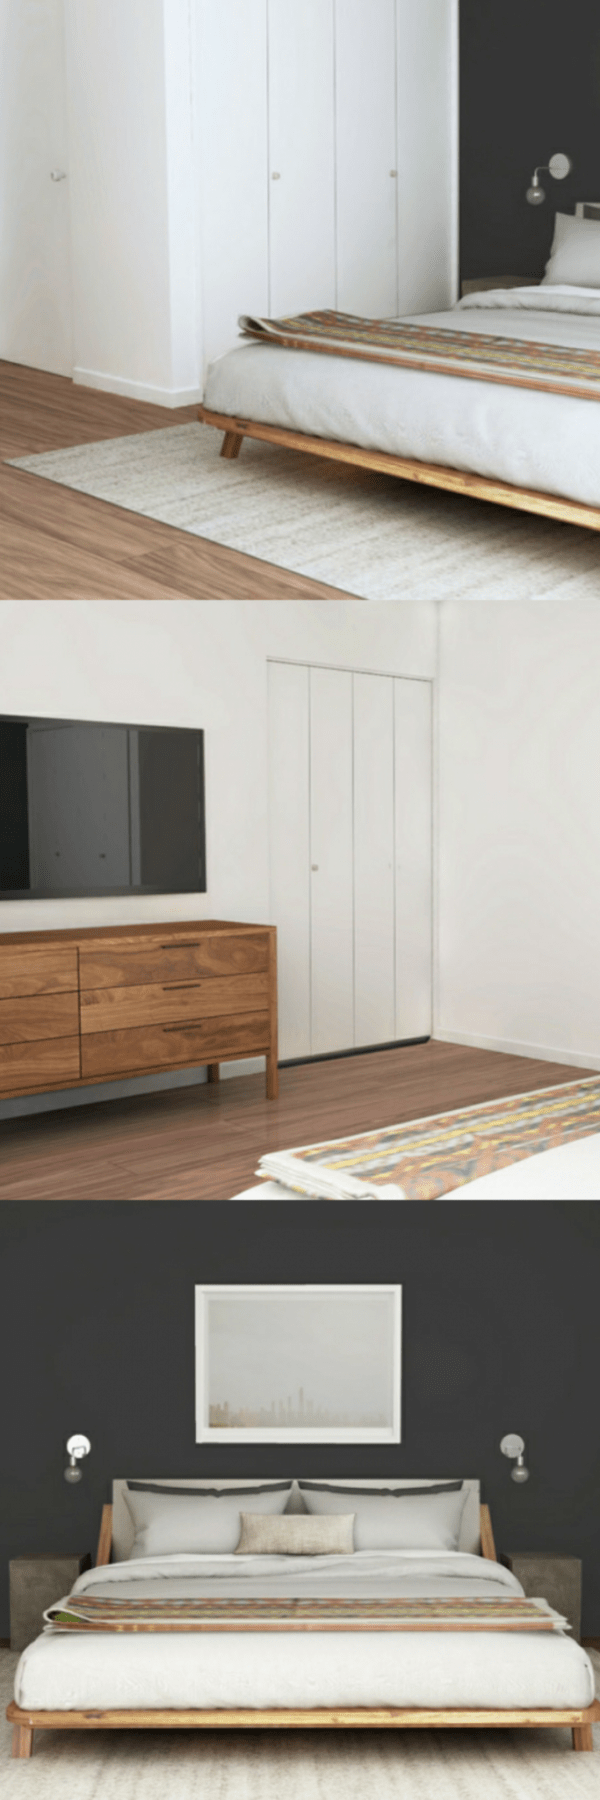 decorating ideas for small master bedroom